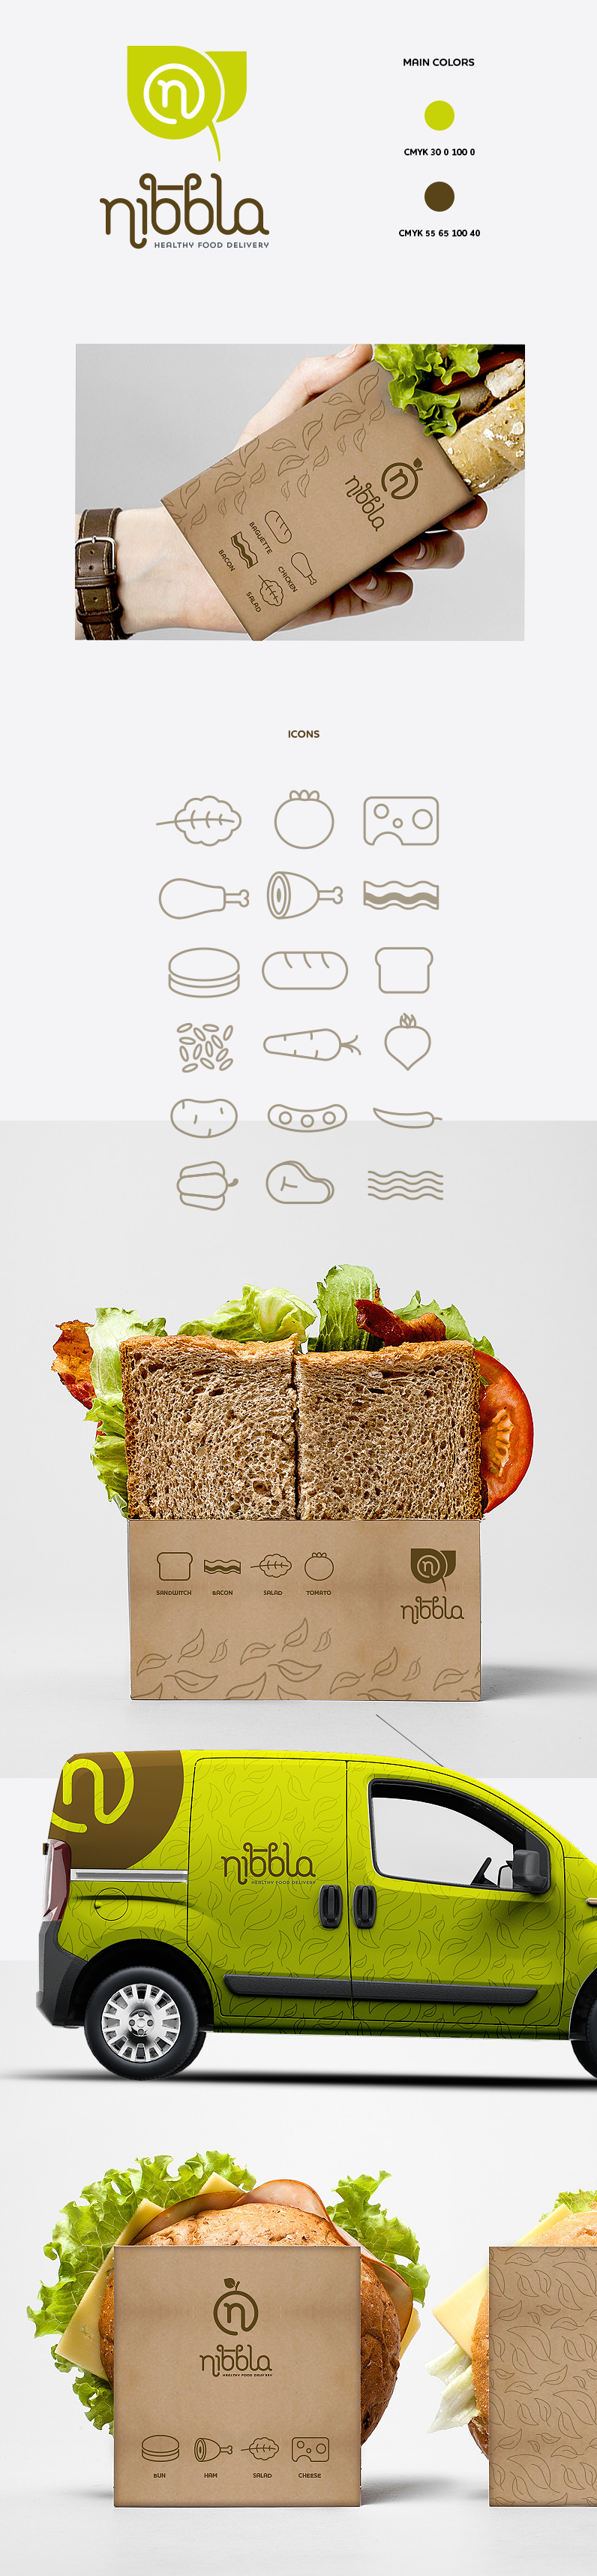 A full corporate design for food company Nibbla by goopanic